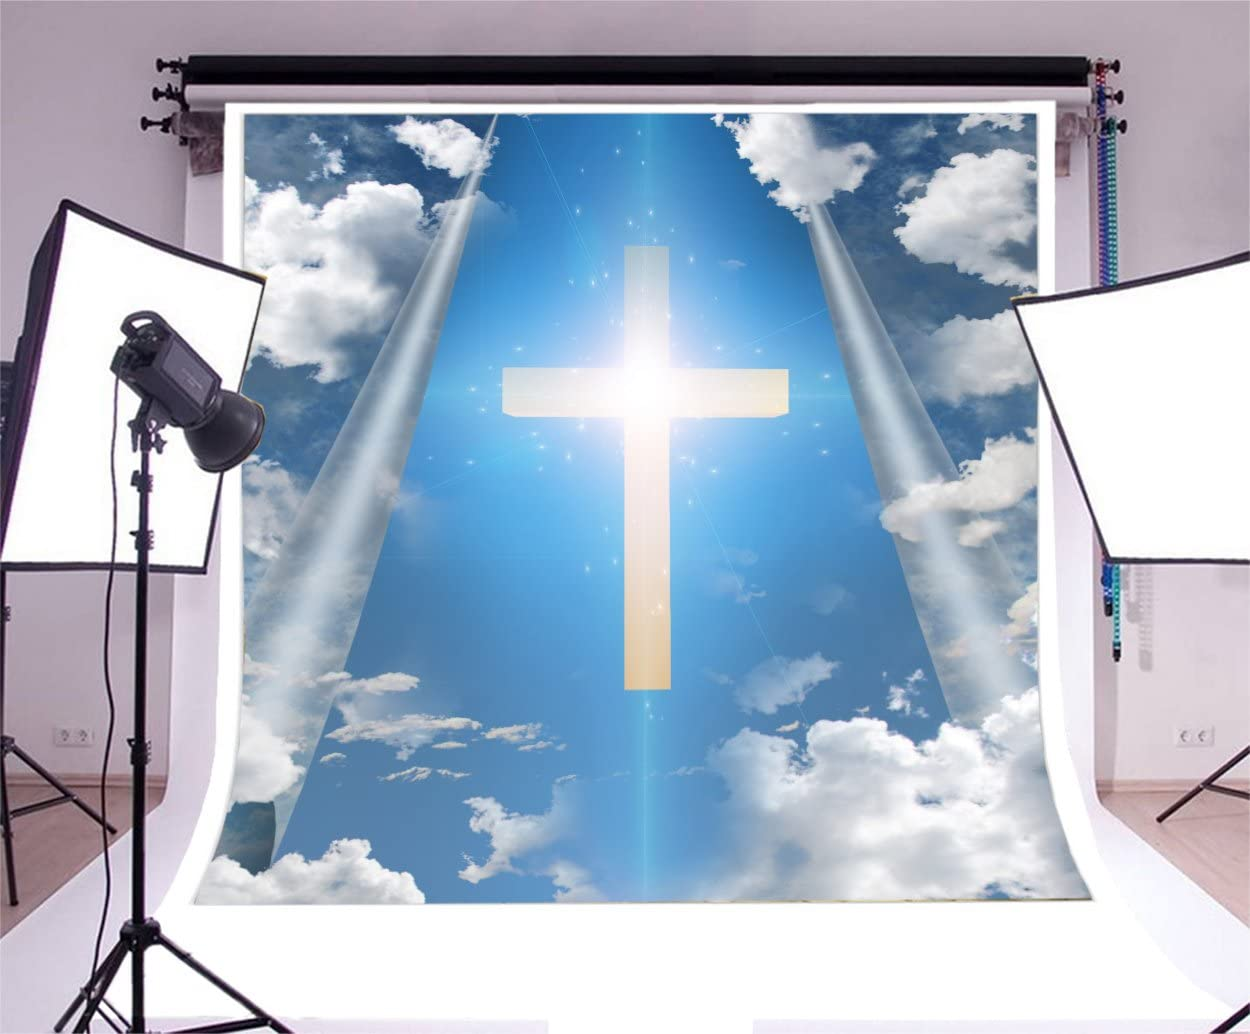 Wofawofa Wedding Ceremony Backdrop 10X8FT Vinyl Jesus Christ Cross Backdrops Fresh Flowers Cart Blue Sky White Cloud Green Grass Meadow Photography Background for Girls Lover Photo Studio Props EB54